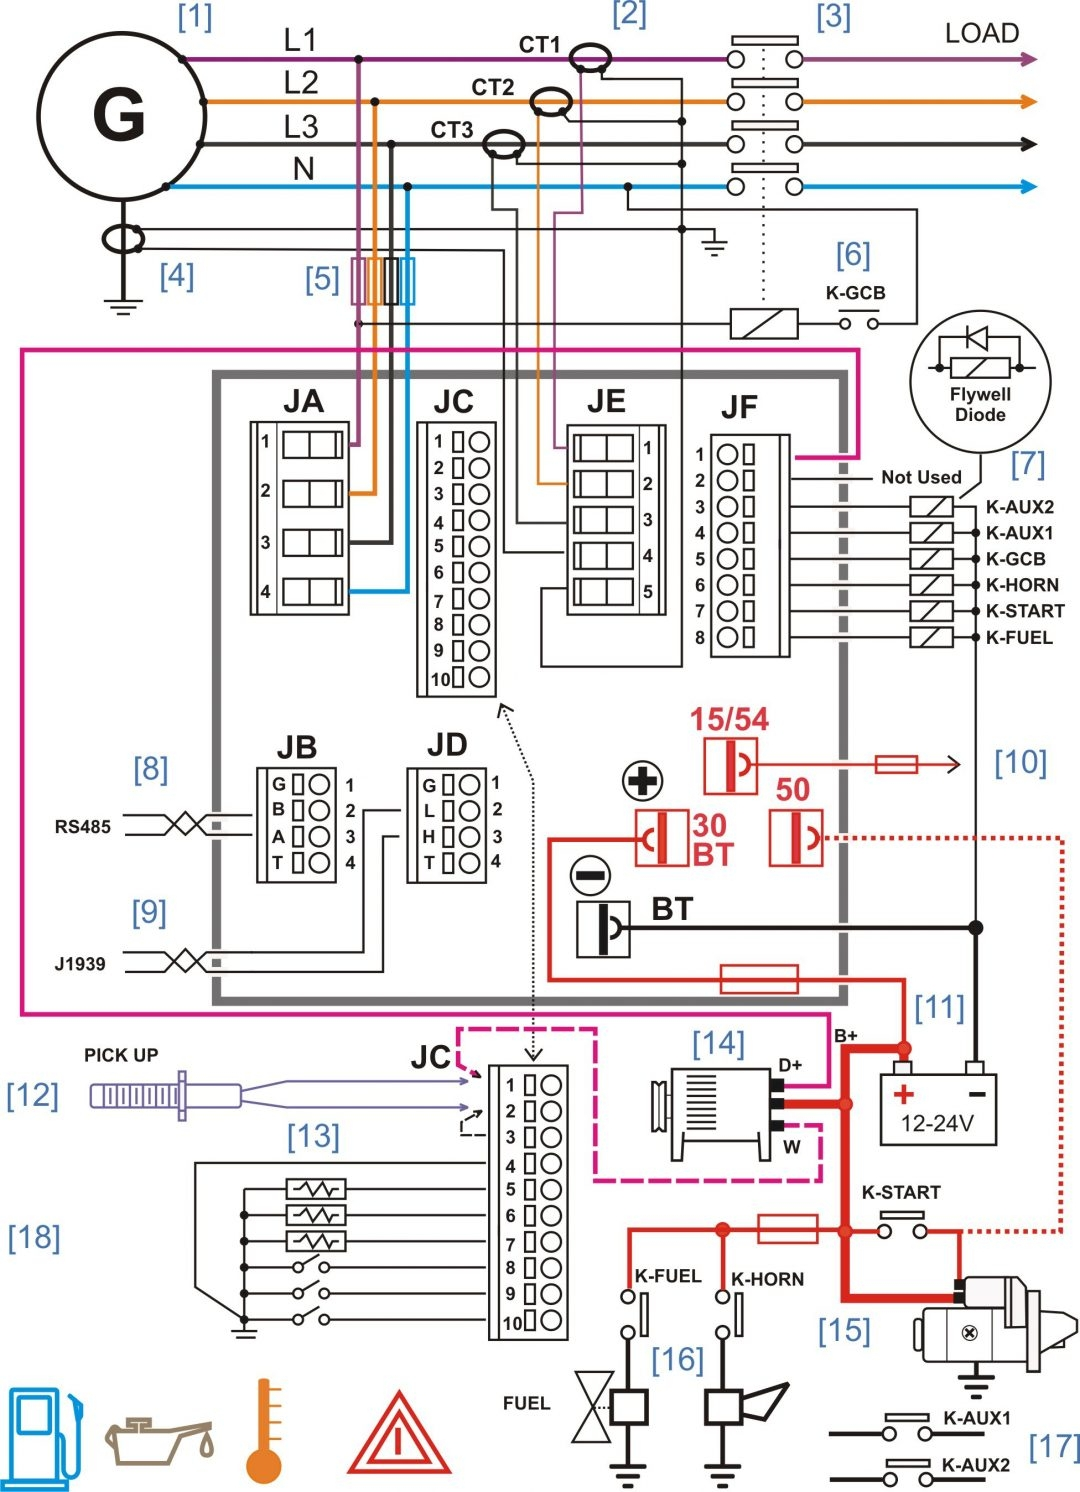 pioneer avh x2700bs wiring diagram Download-Pioneer Deh X6910bt Wiring Diagram Luxury Pioneer Avh X2700bs Wiring 18-a